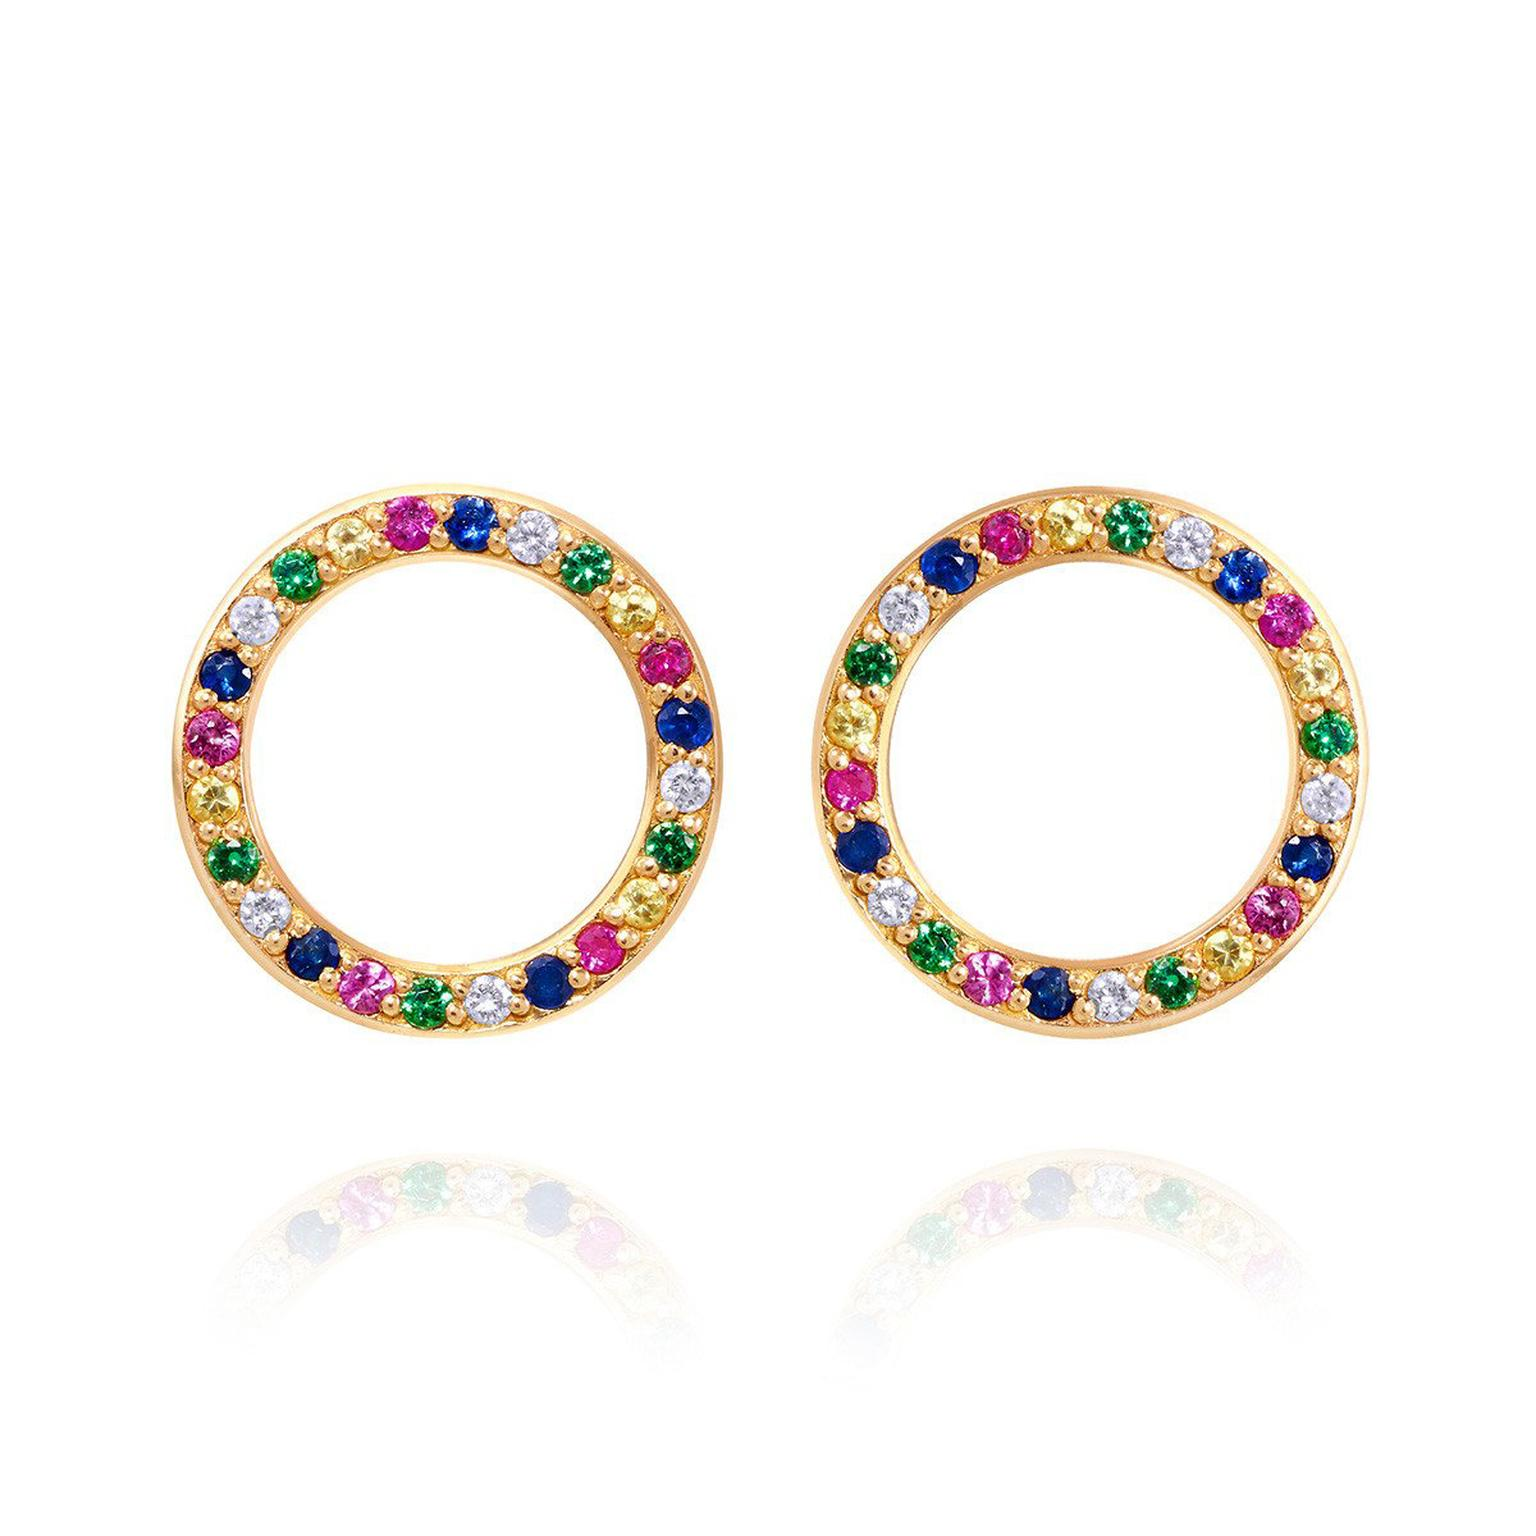 Sabine Getty Baby Memphis studs with multi-coloured gemstones